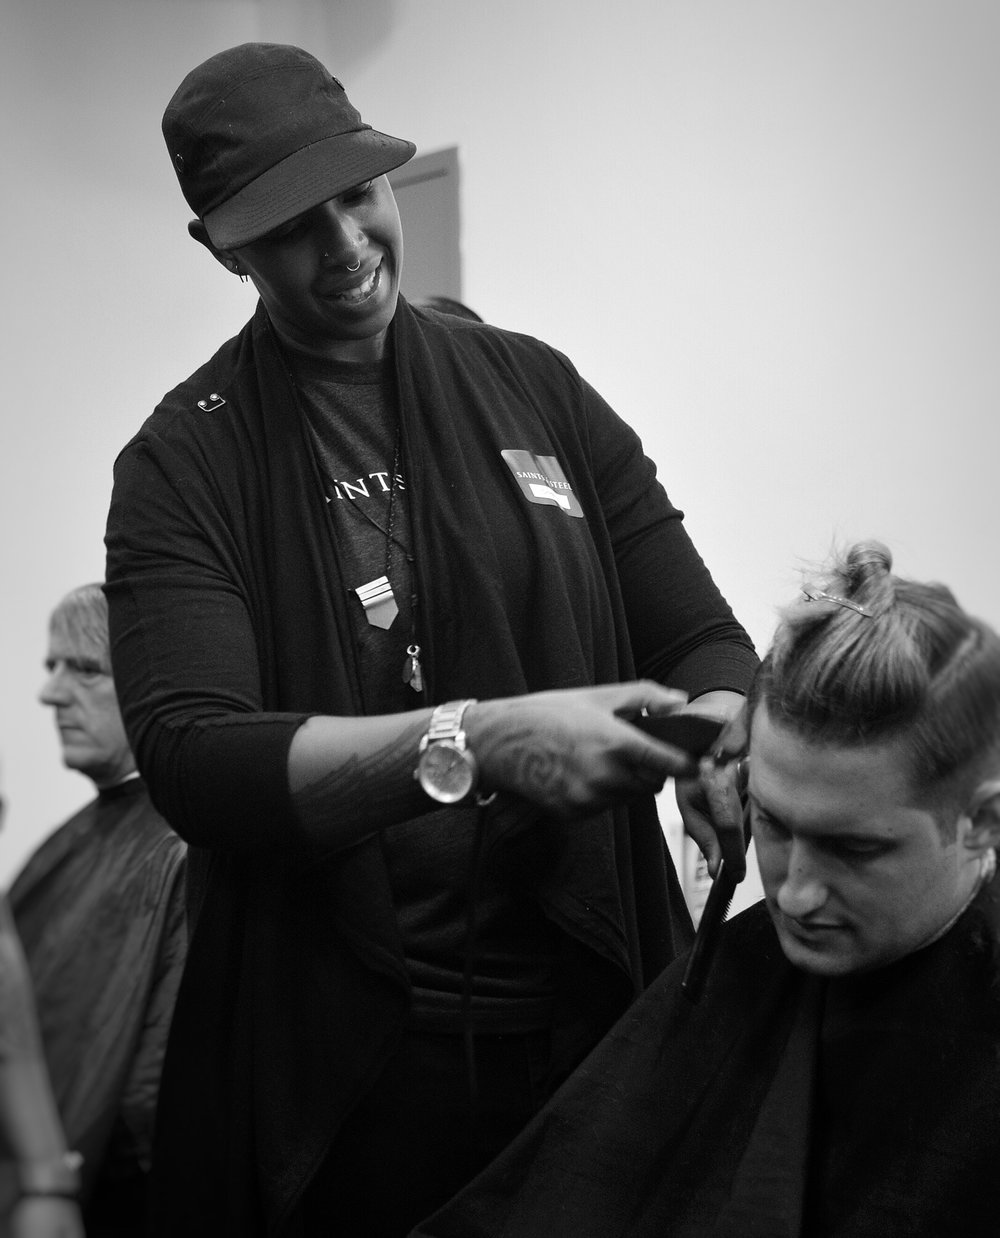 Christian giving another amazing haircut @ the SF LGBT center. Photo by Sarah Karlan